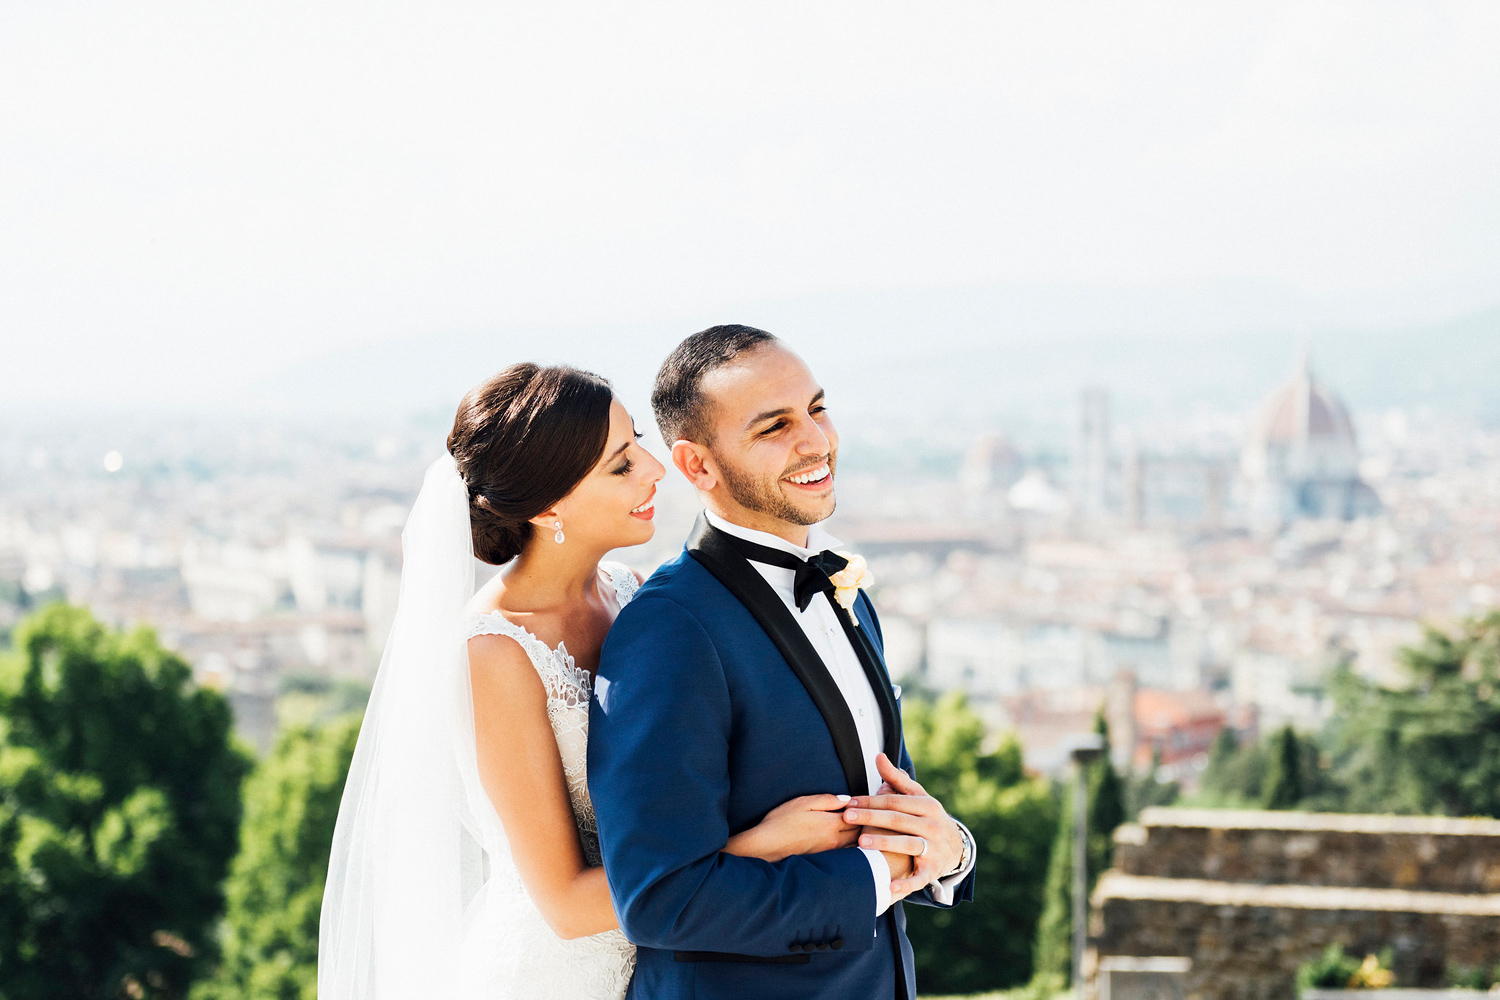 katie_mitchell_wedding_florence_tuscany_villa_di_miano_wedding_photography_35.jpg